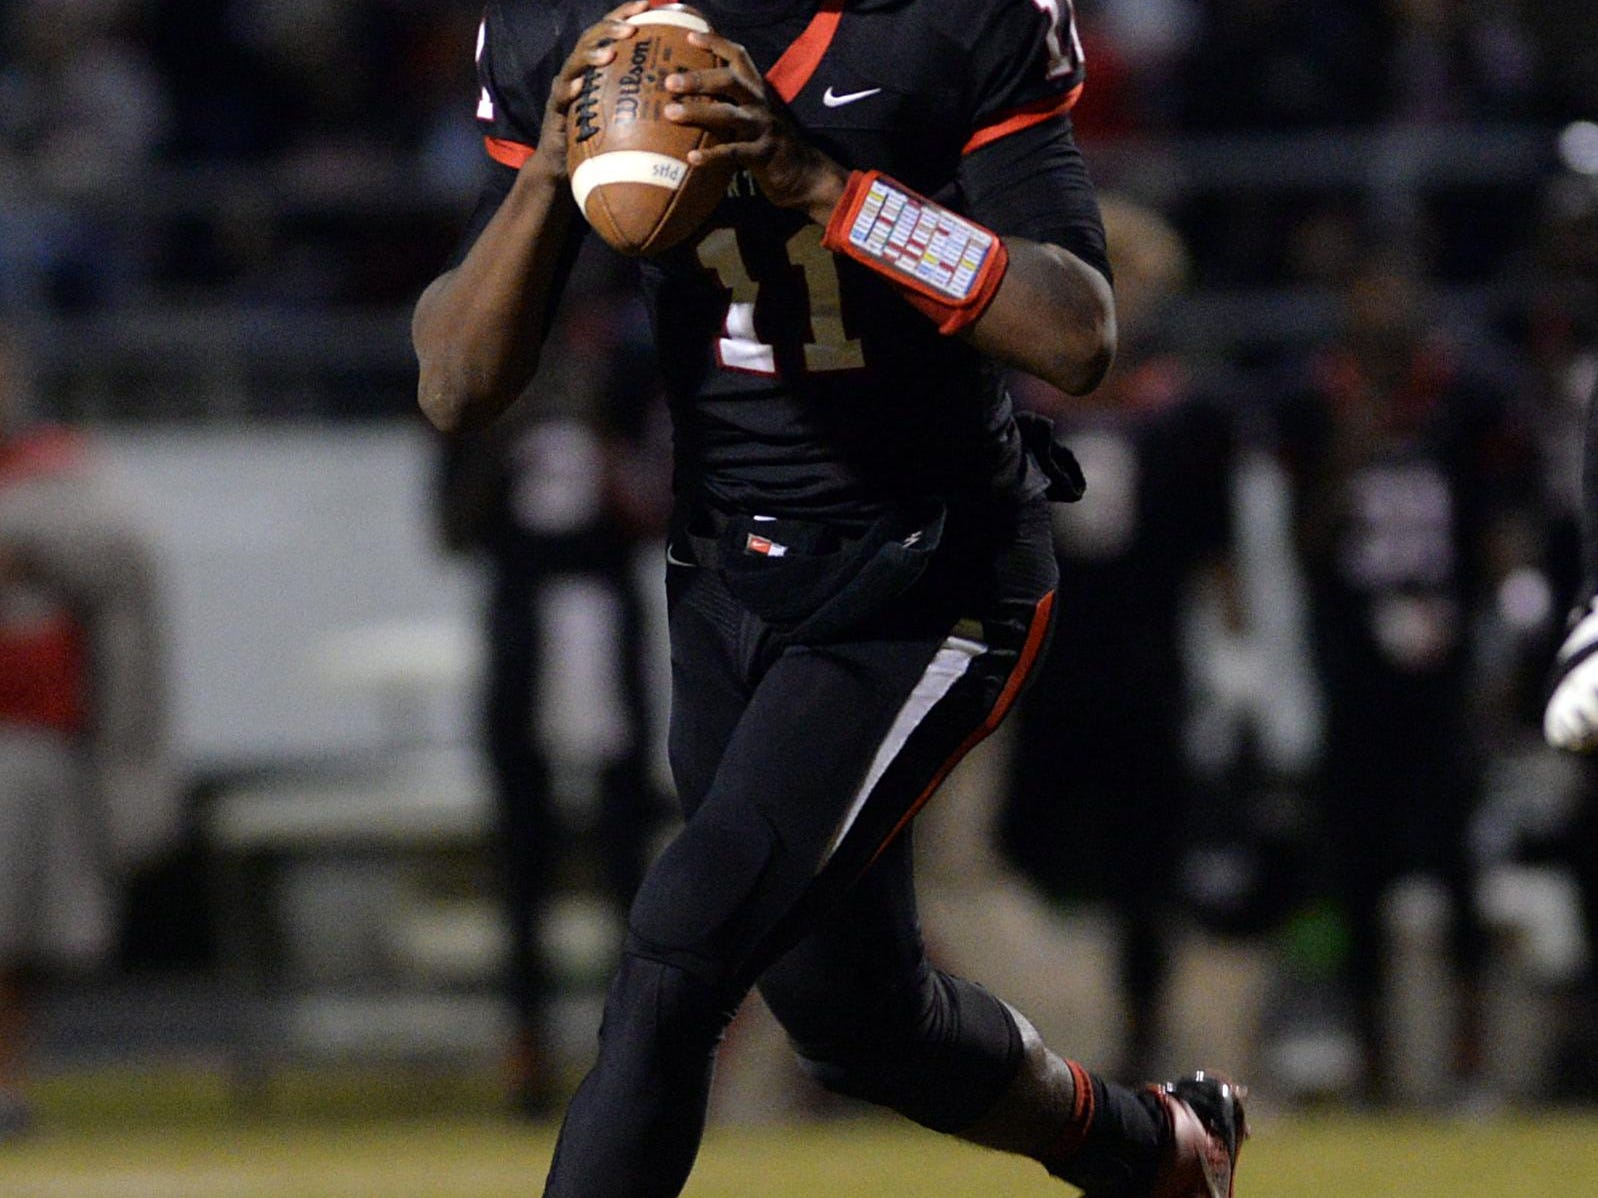 Douglas Collier/The Times Parkway quarterback Keondre Wudtee drops back to pass during the Panthers Class 5A second round playoff game against Acadiana. Parkway quarterback Keondre Wudtee drops back to pass during the Panthers Class 5A second round playoff game against Acadiana.